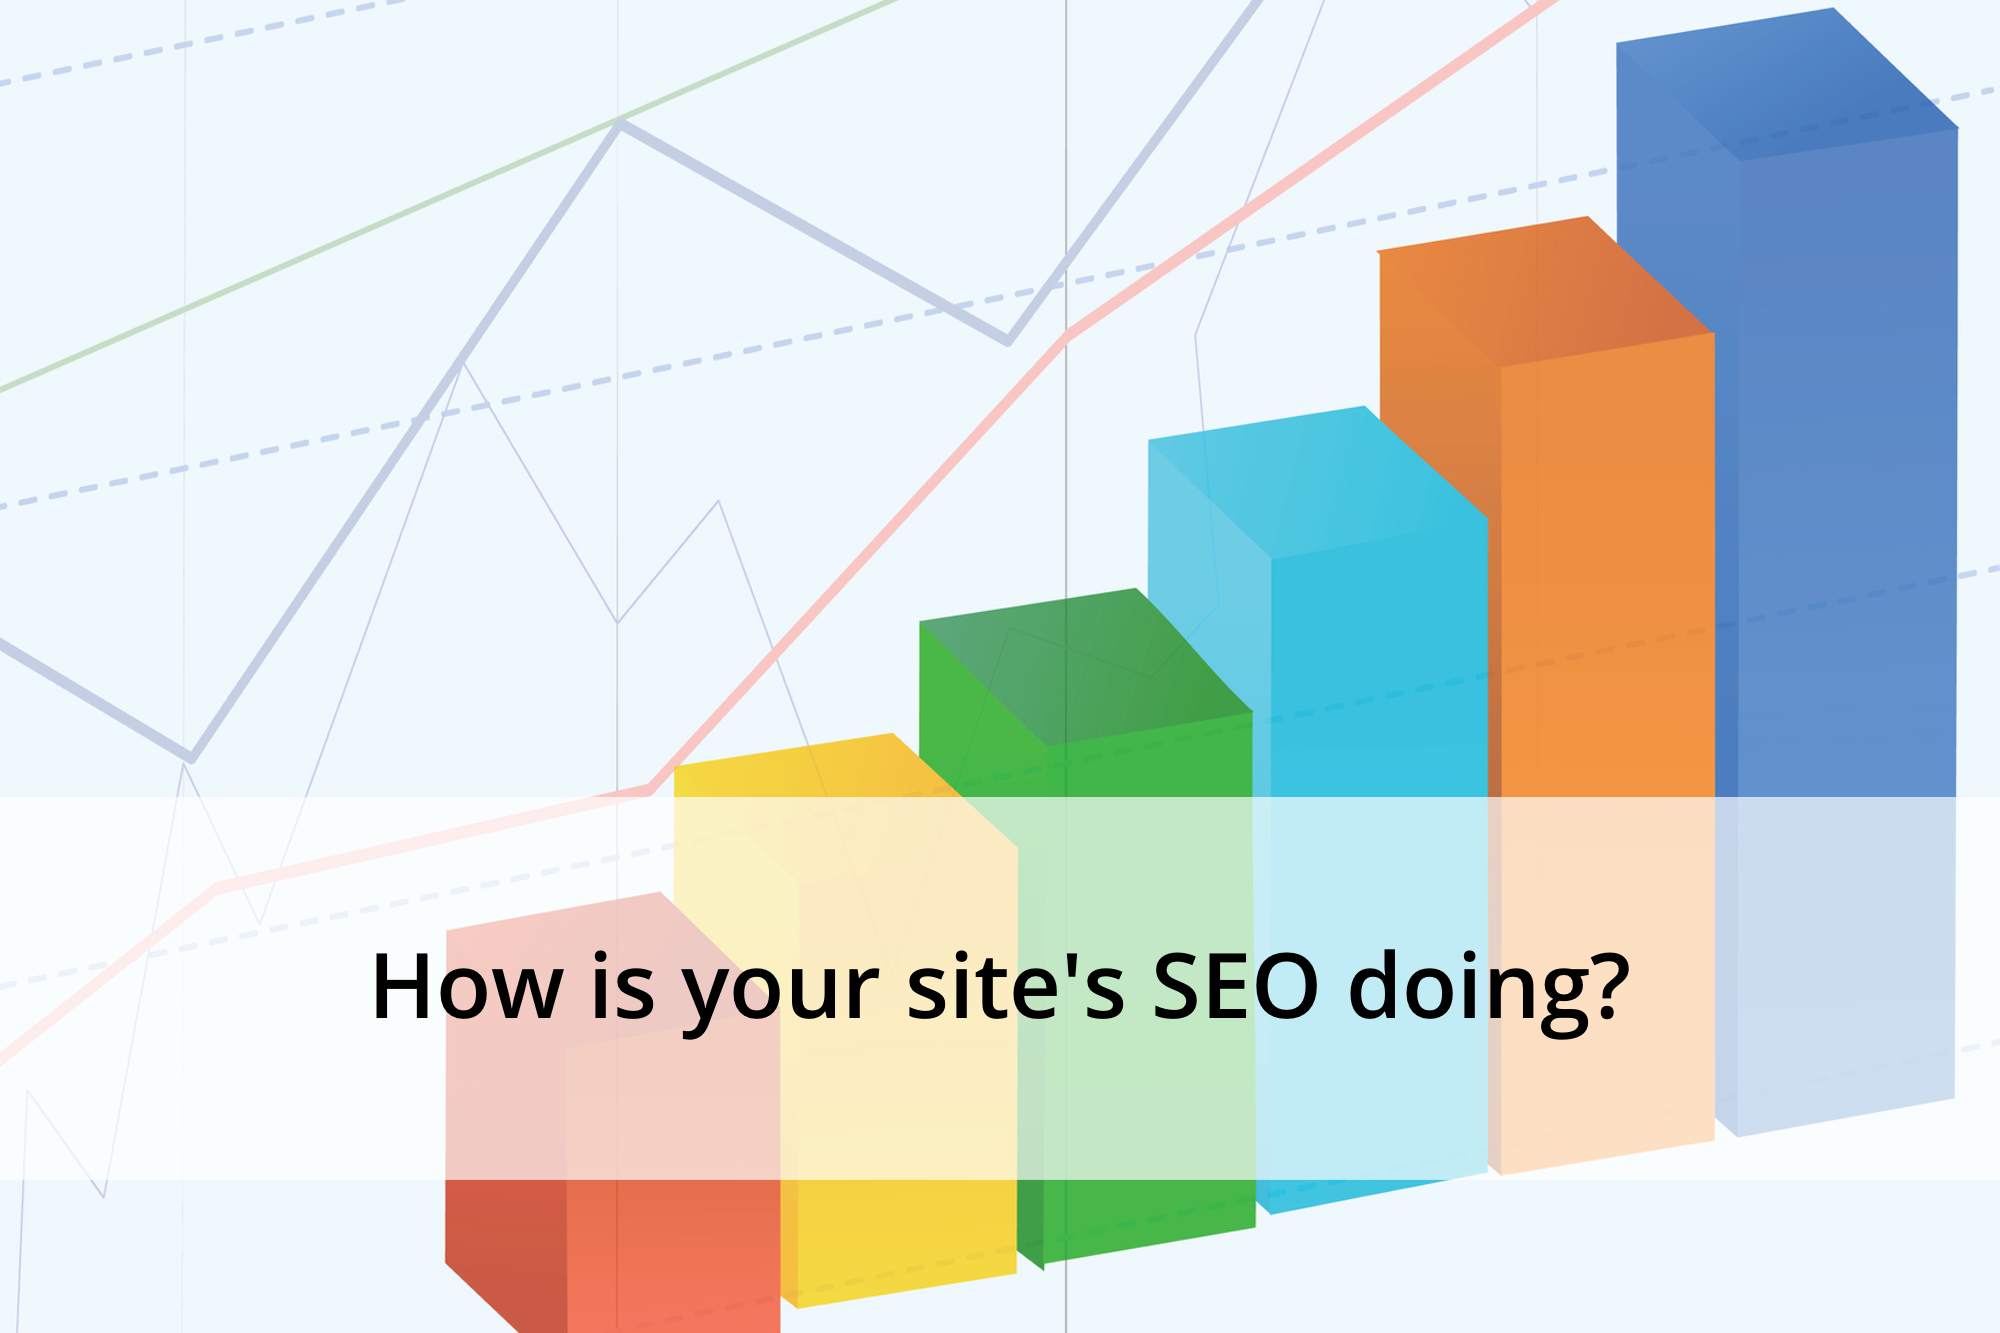 How is your site's SEO doing